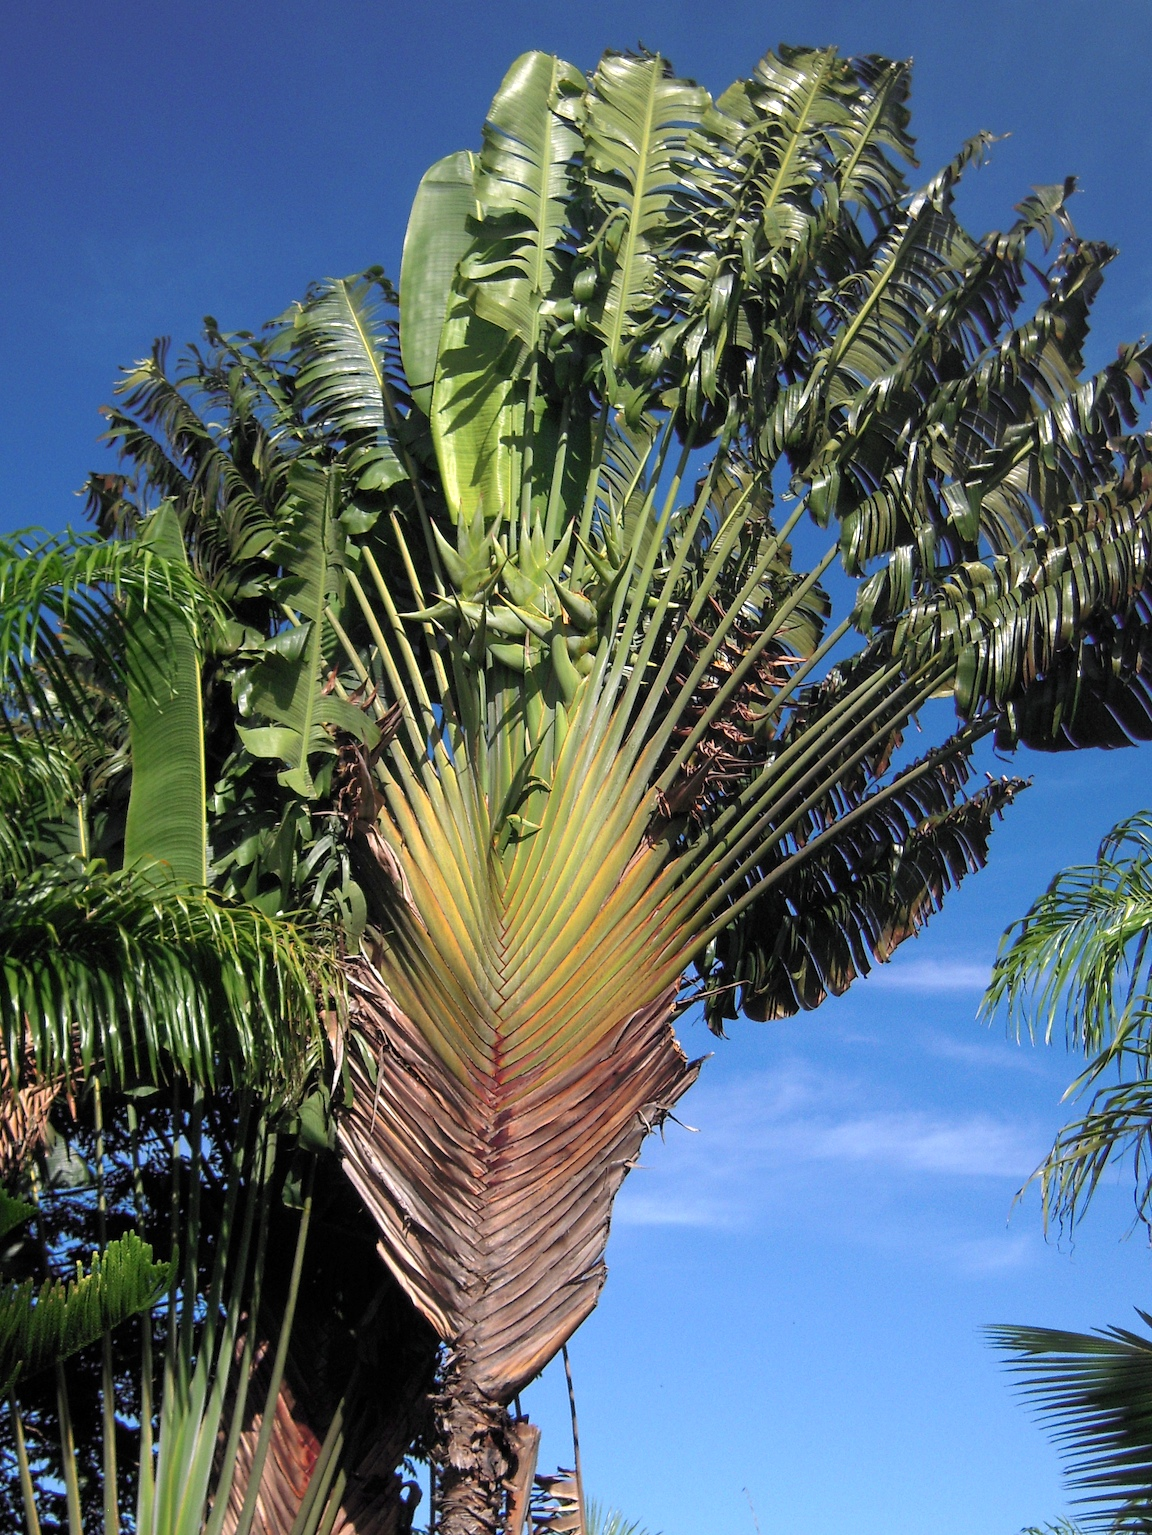 Madagascar's iconic traveler's palm (Ravenala madagascariensis) features in the national emblem.